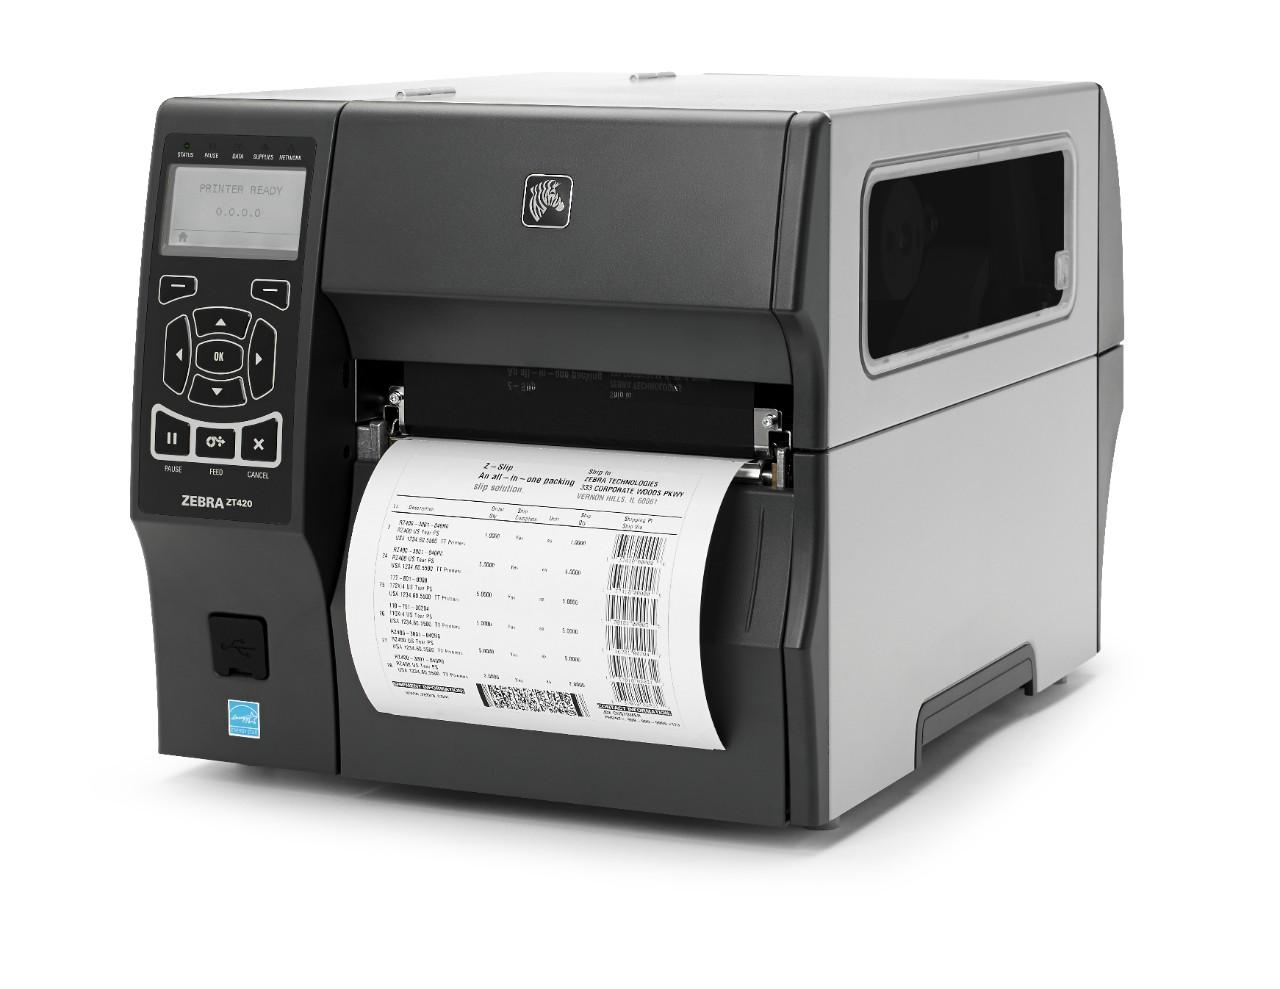 6 inch wide ZT420 thermal label printer